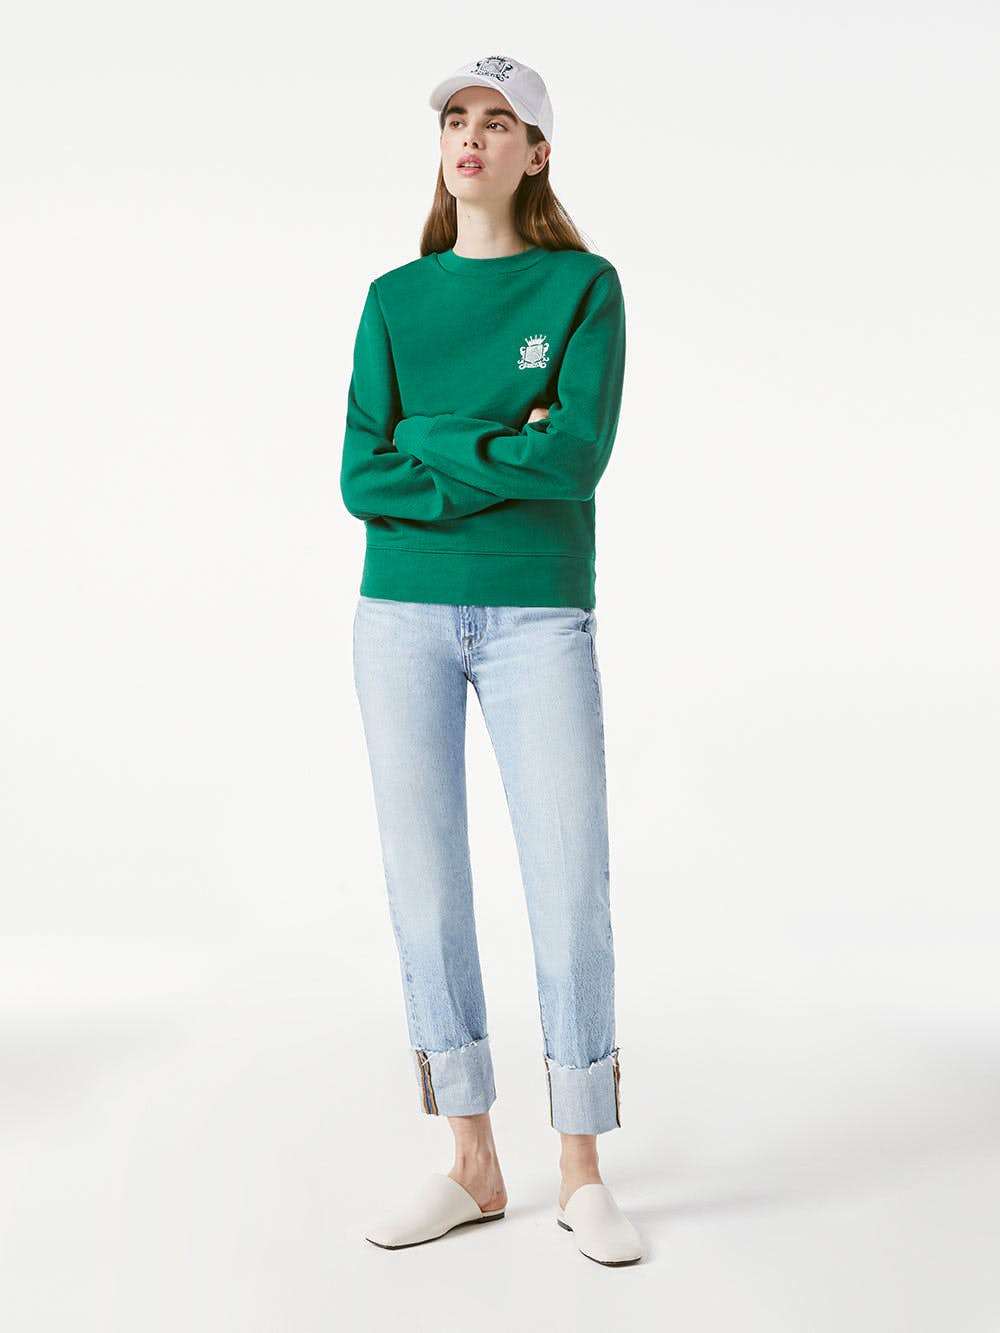 sweater front full body view 2